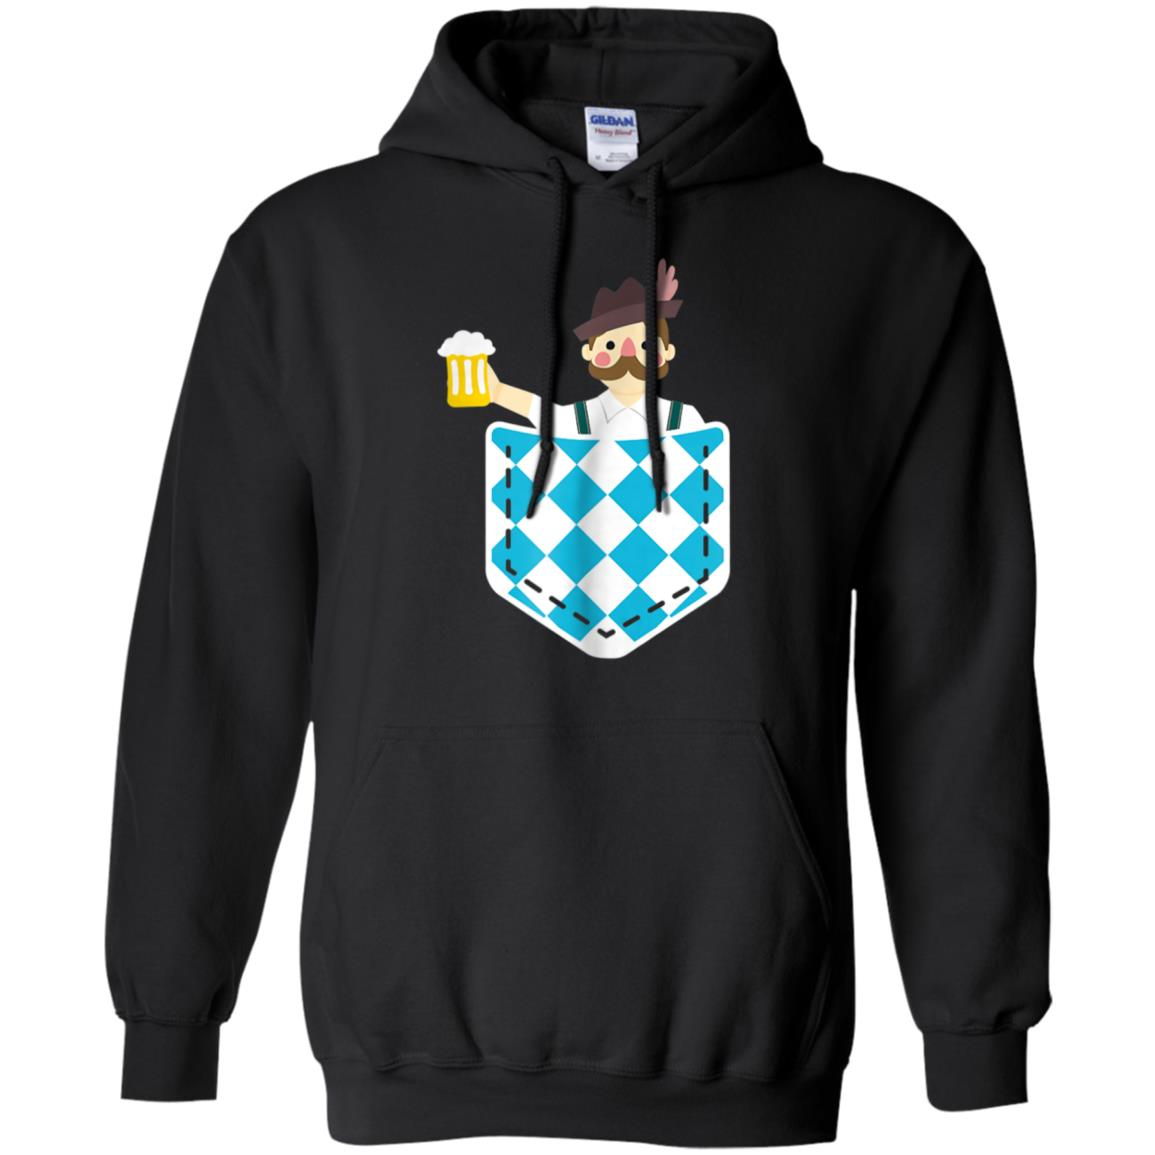 Bavarian Man With Beer In Pocket Funny Oktoberfest T-Shirt 99promocode